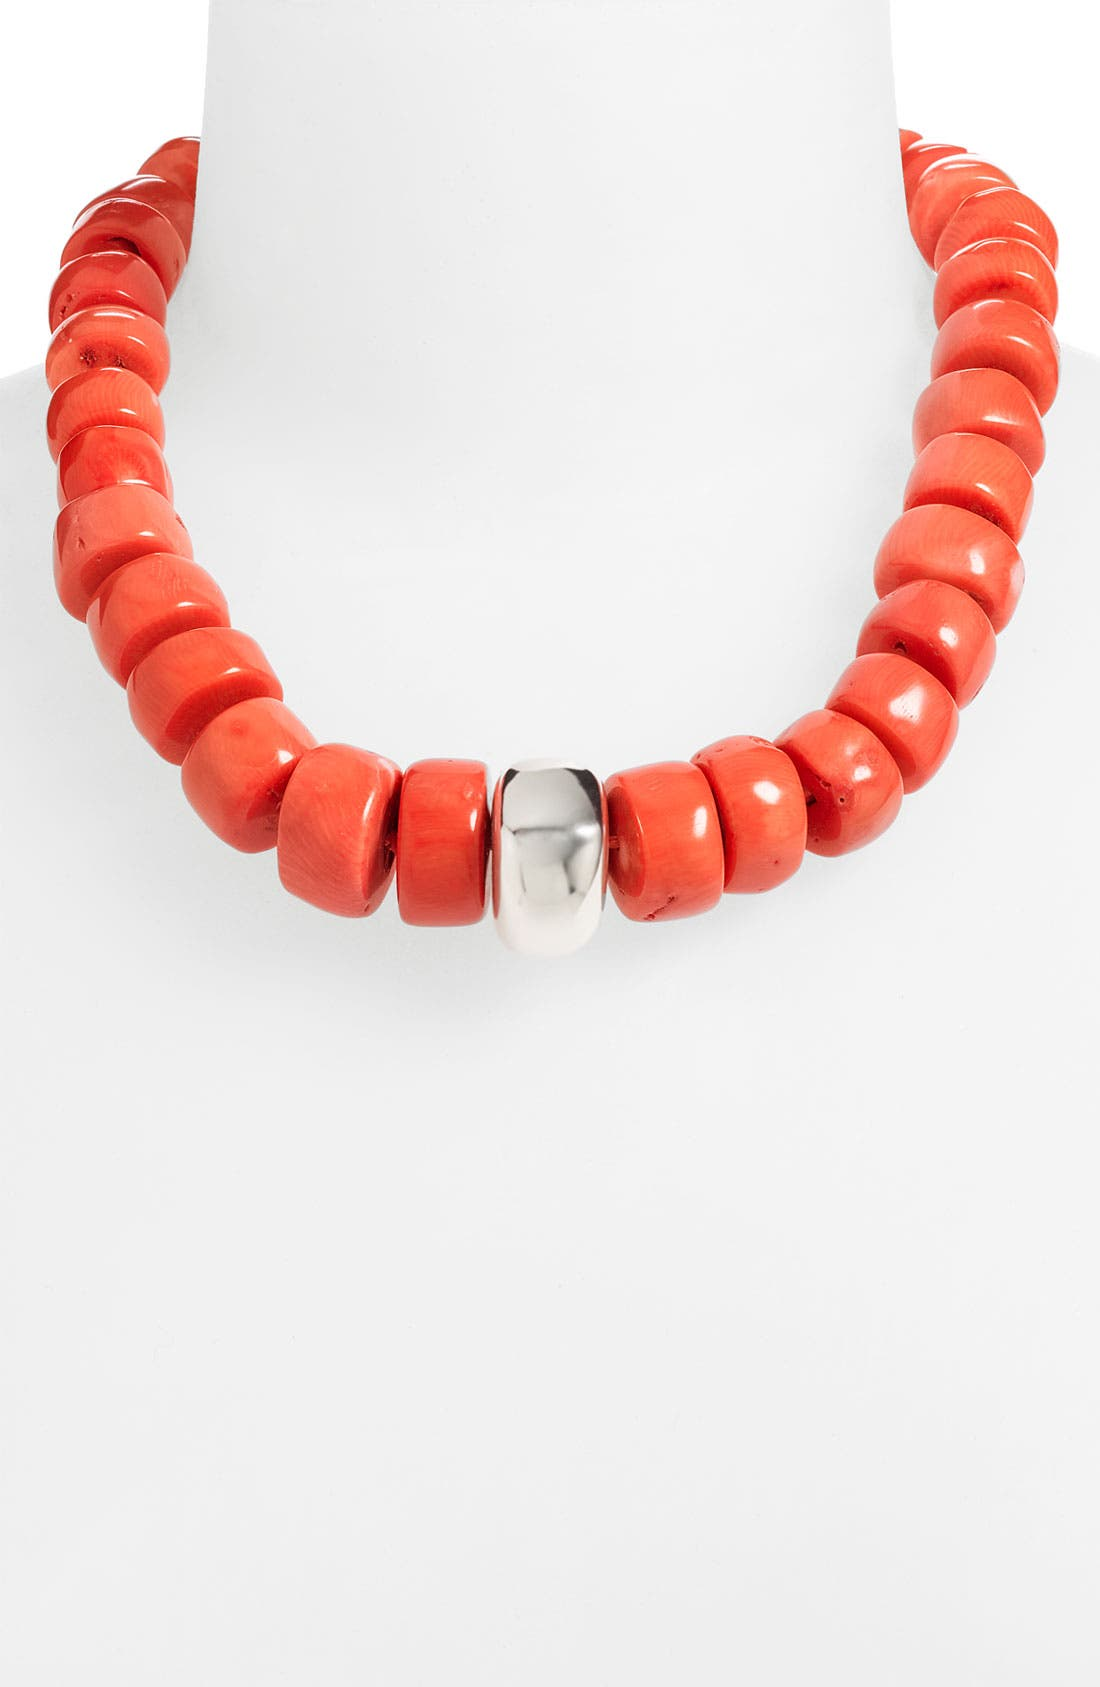 Main Image - Simon Sebbag 'Palm Beach' Coral Bead Necklace